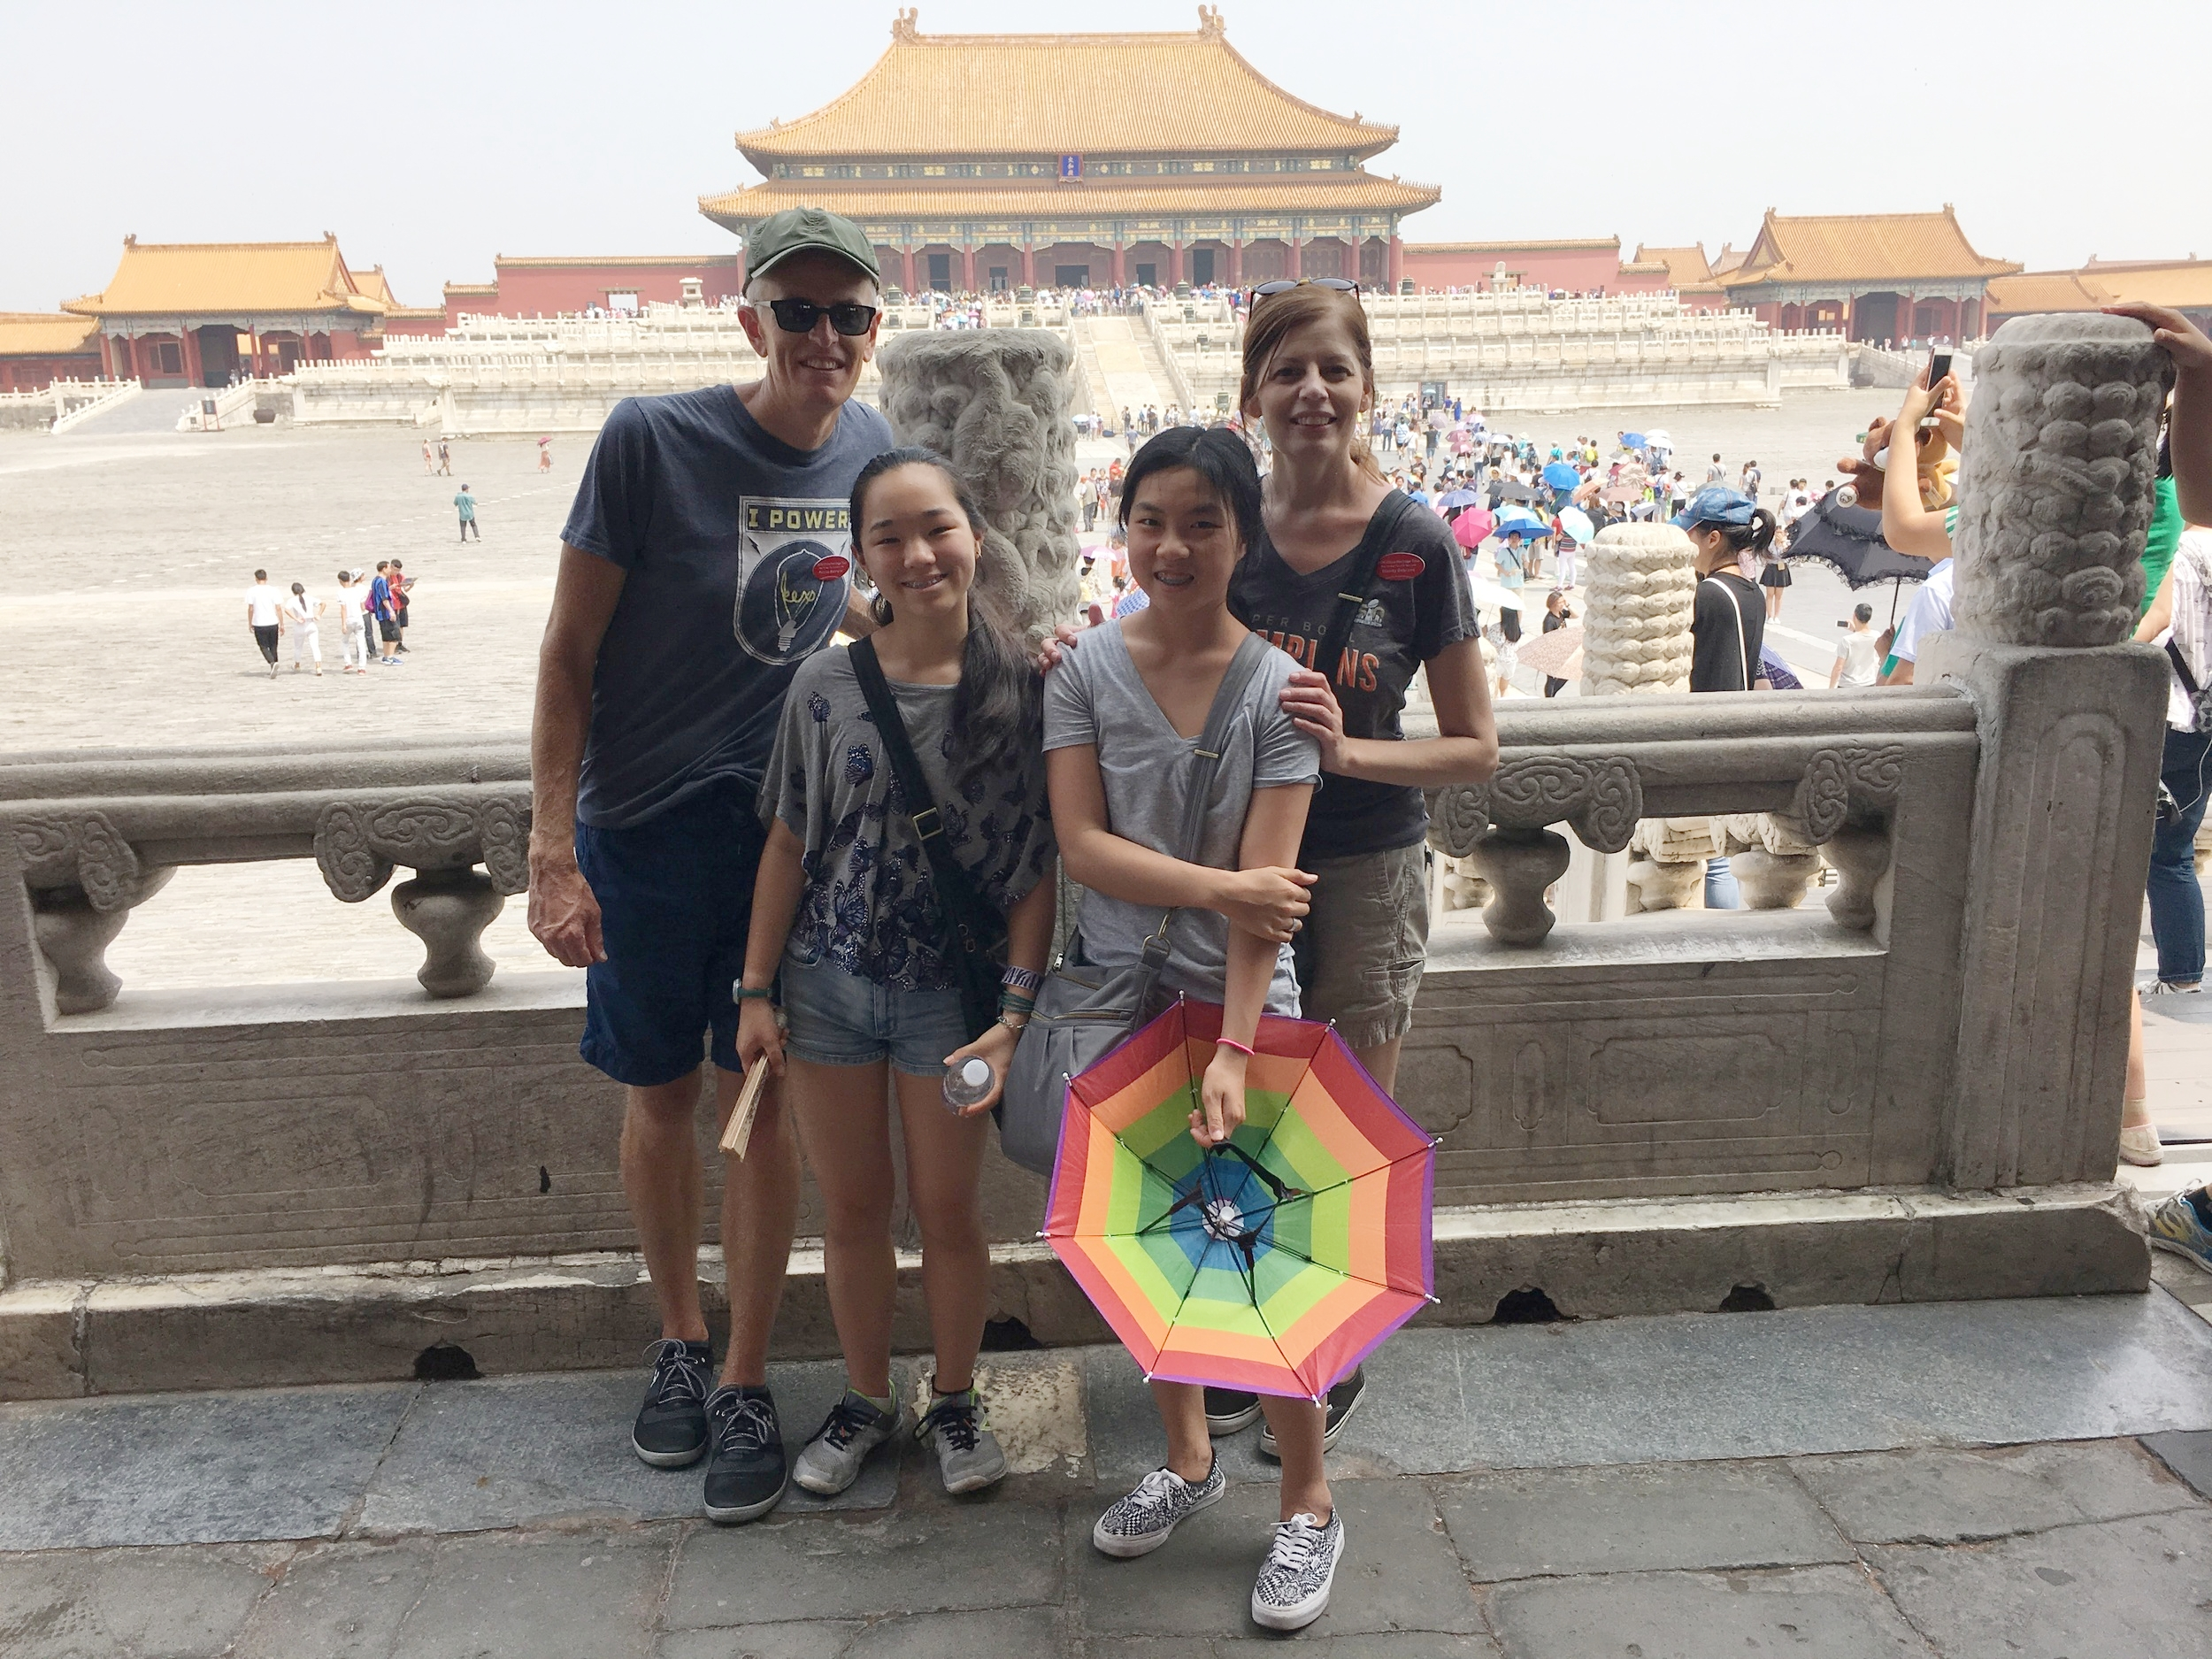 Beijing -Touring the Forbidden City with my family alongside thousands of other visitors. Behind us stands the Hall of Supreme Harmony (Taihedian) -- the throne hall of Ming and Qing emperors.